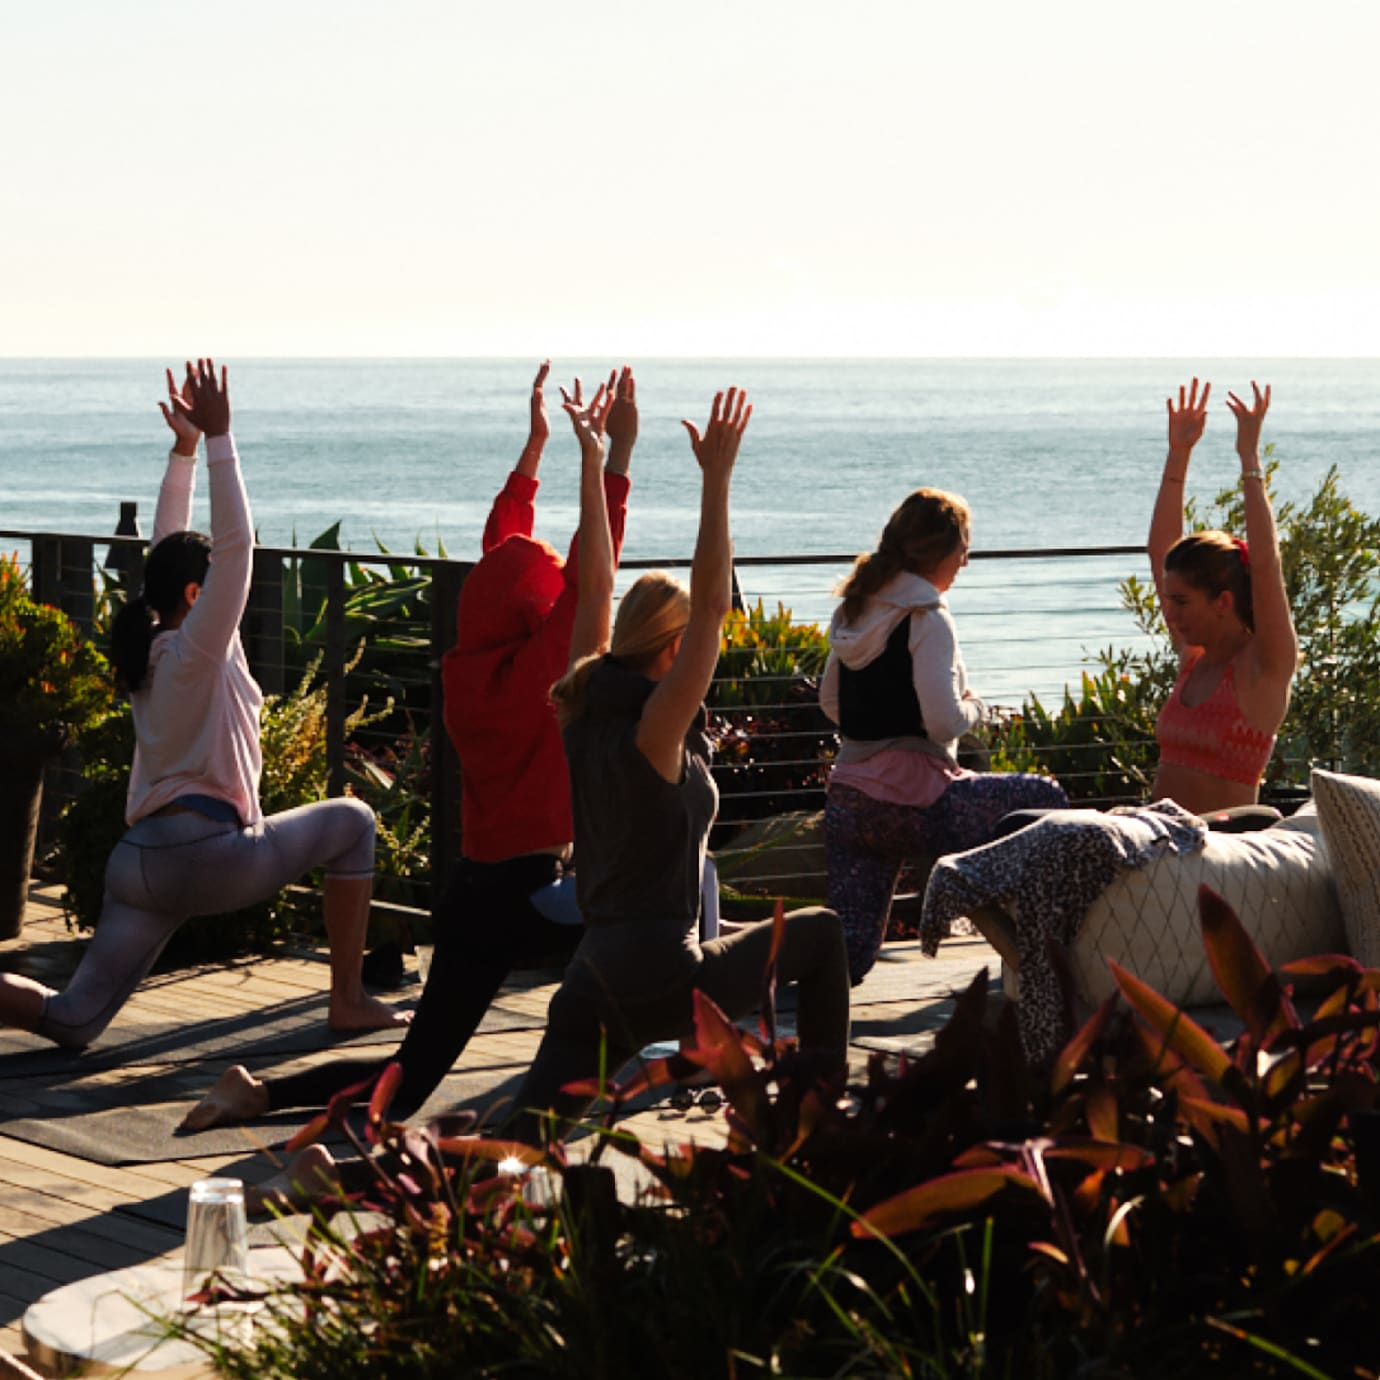 A group of people in a yoga class on an outdoor terrace overlooking the sea.